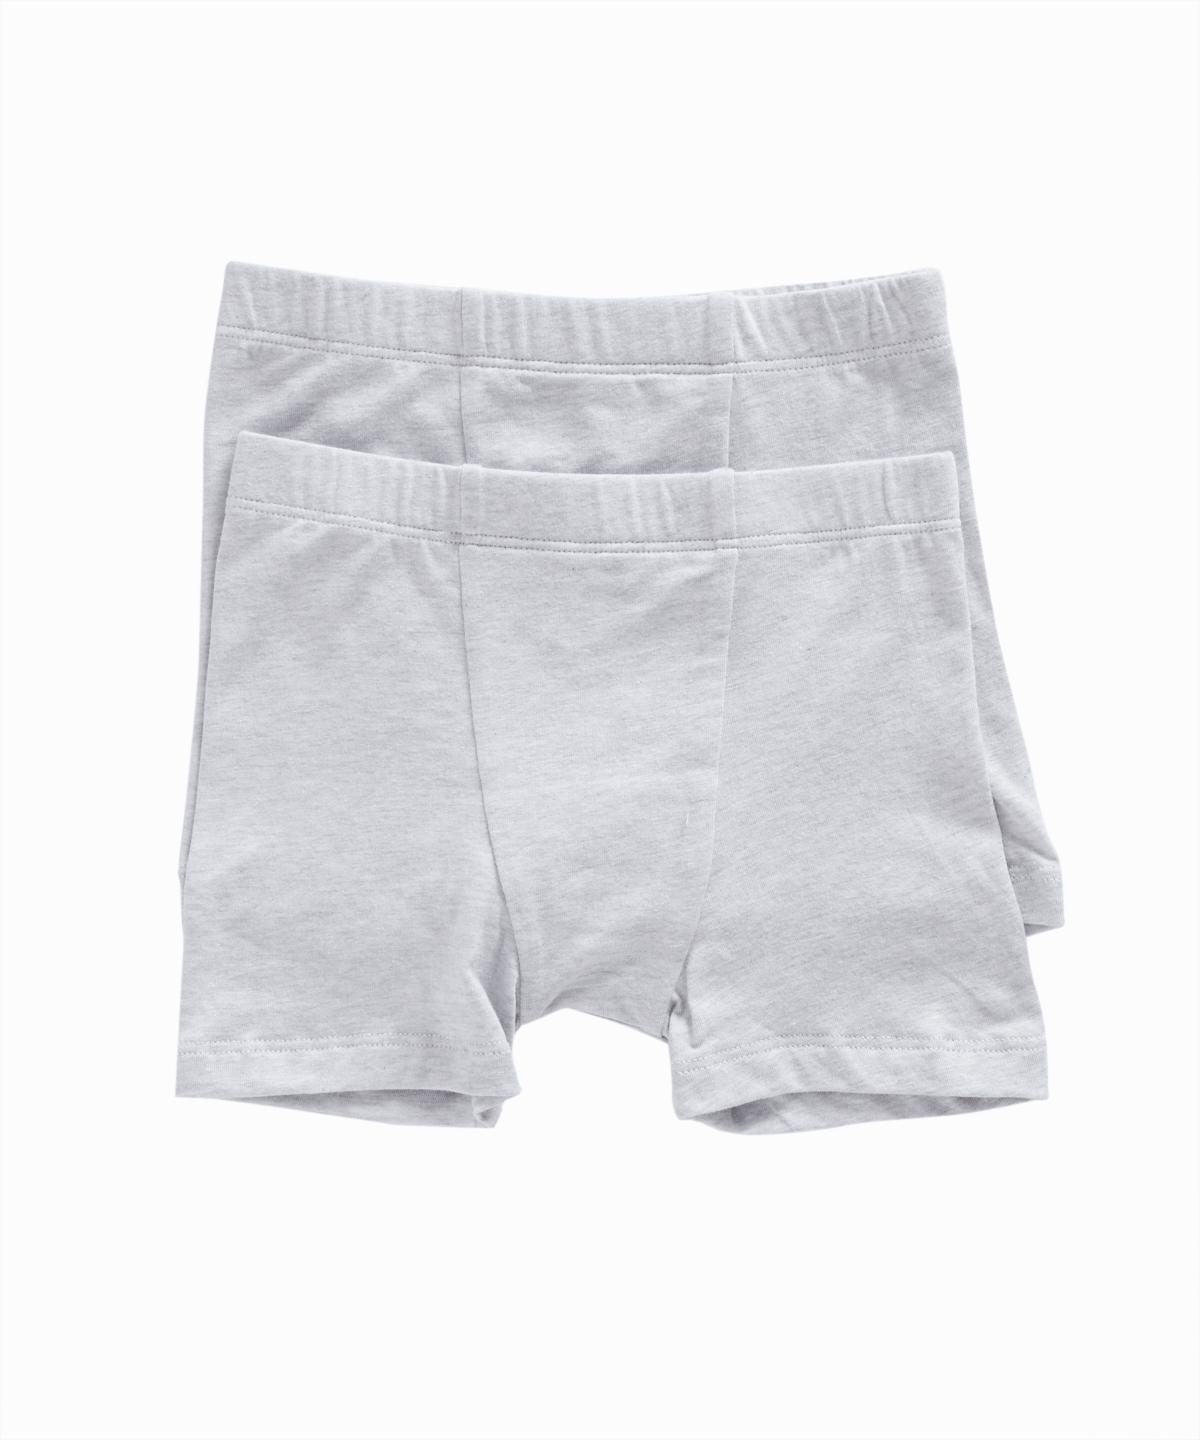 Grey Set of 2 Boxers